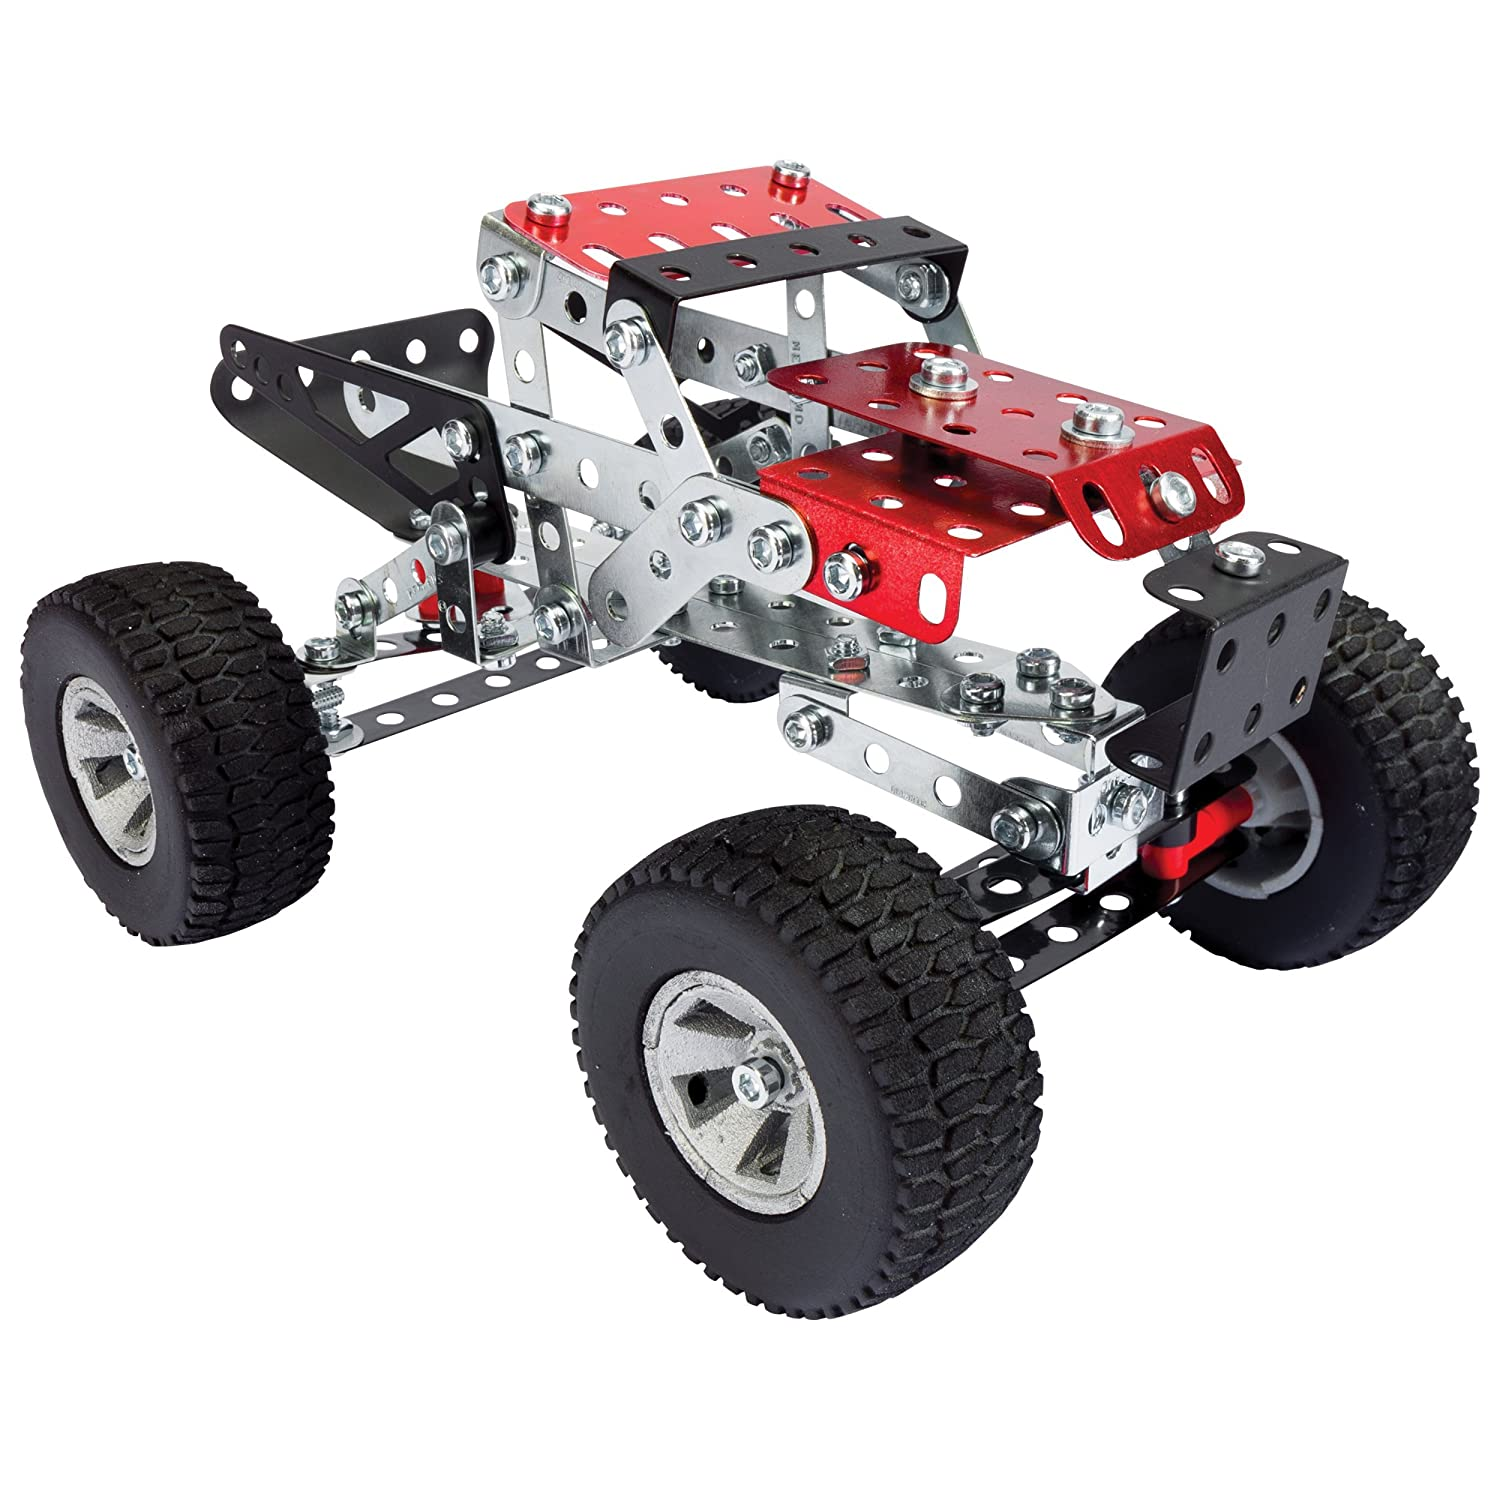 Erector by Meccano Desert Adventure 20 in 1 Model Building Kit STEM Education Toy for Ages 8 and Up